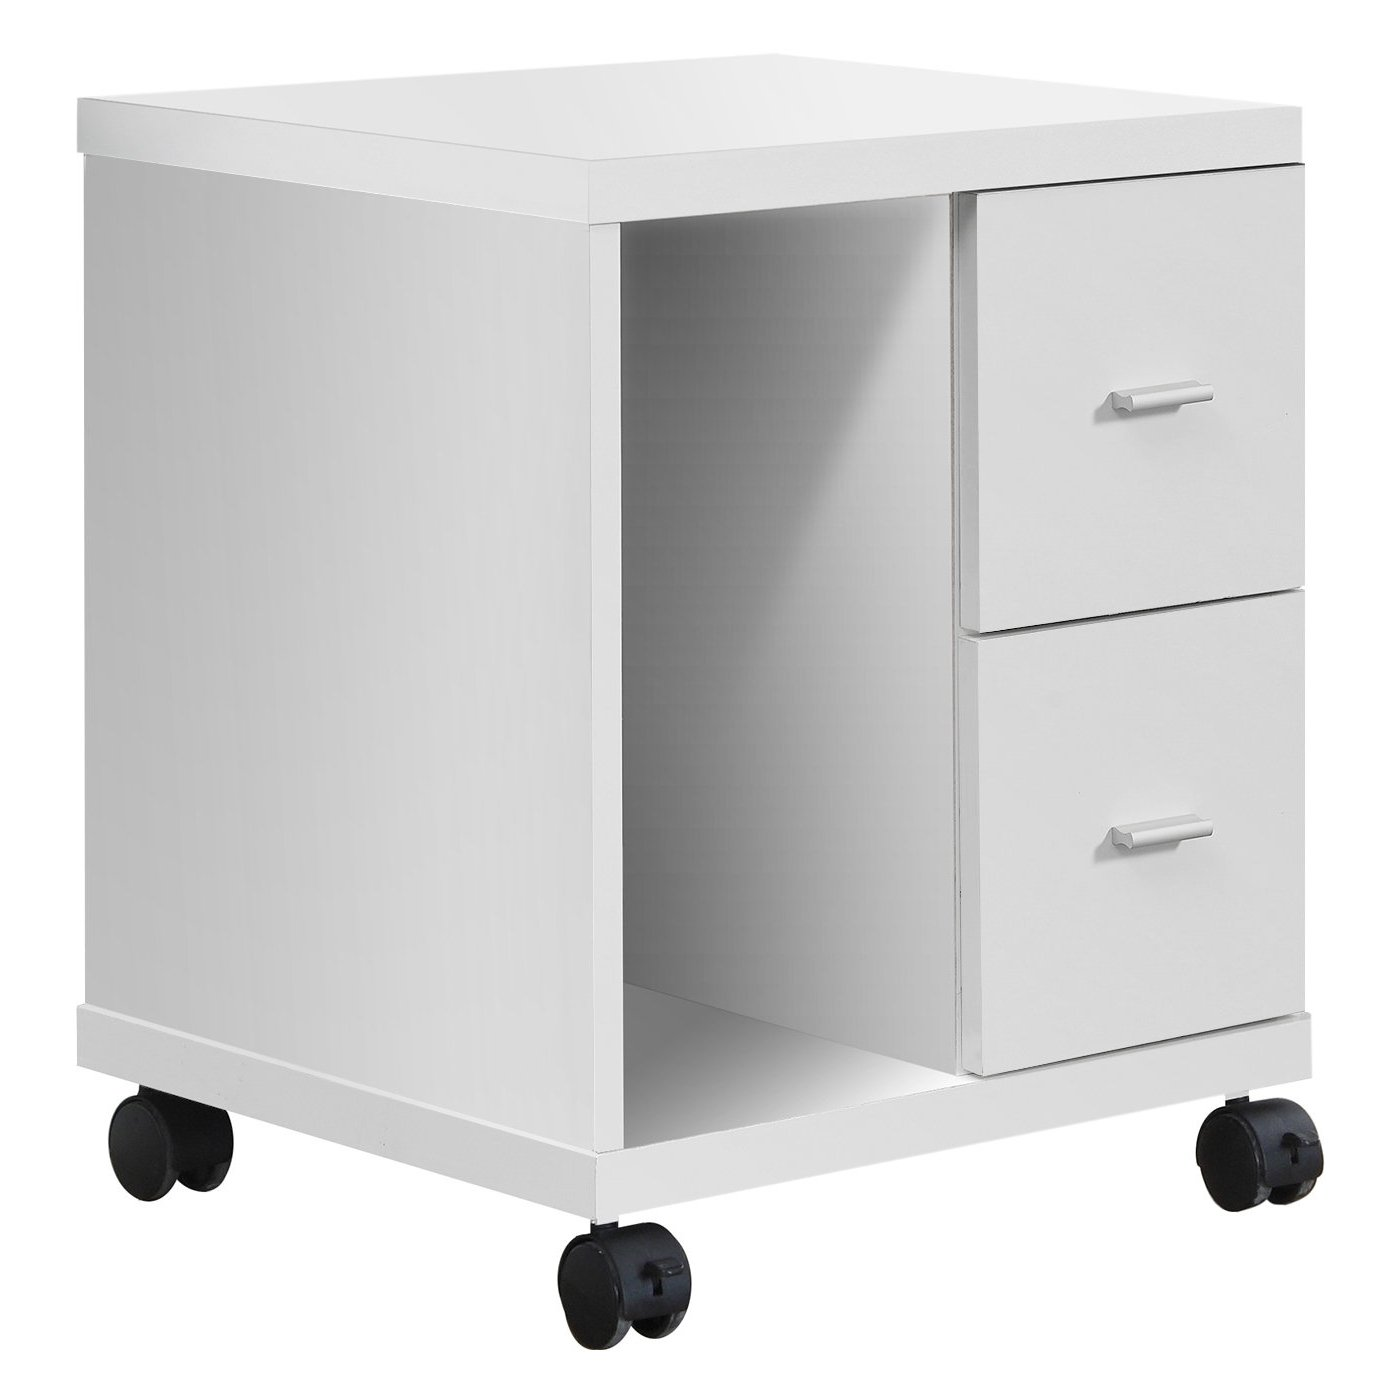 Monarch Specialties I 7055 White Hollow-Core 2 Drawer Computer Stand on Castors